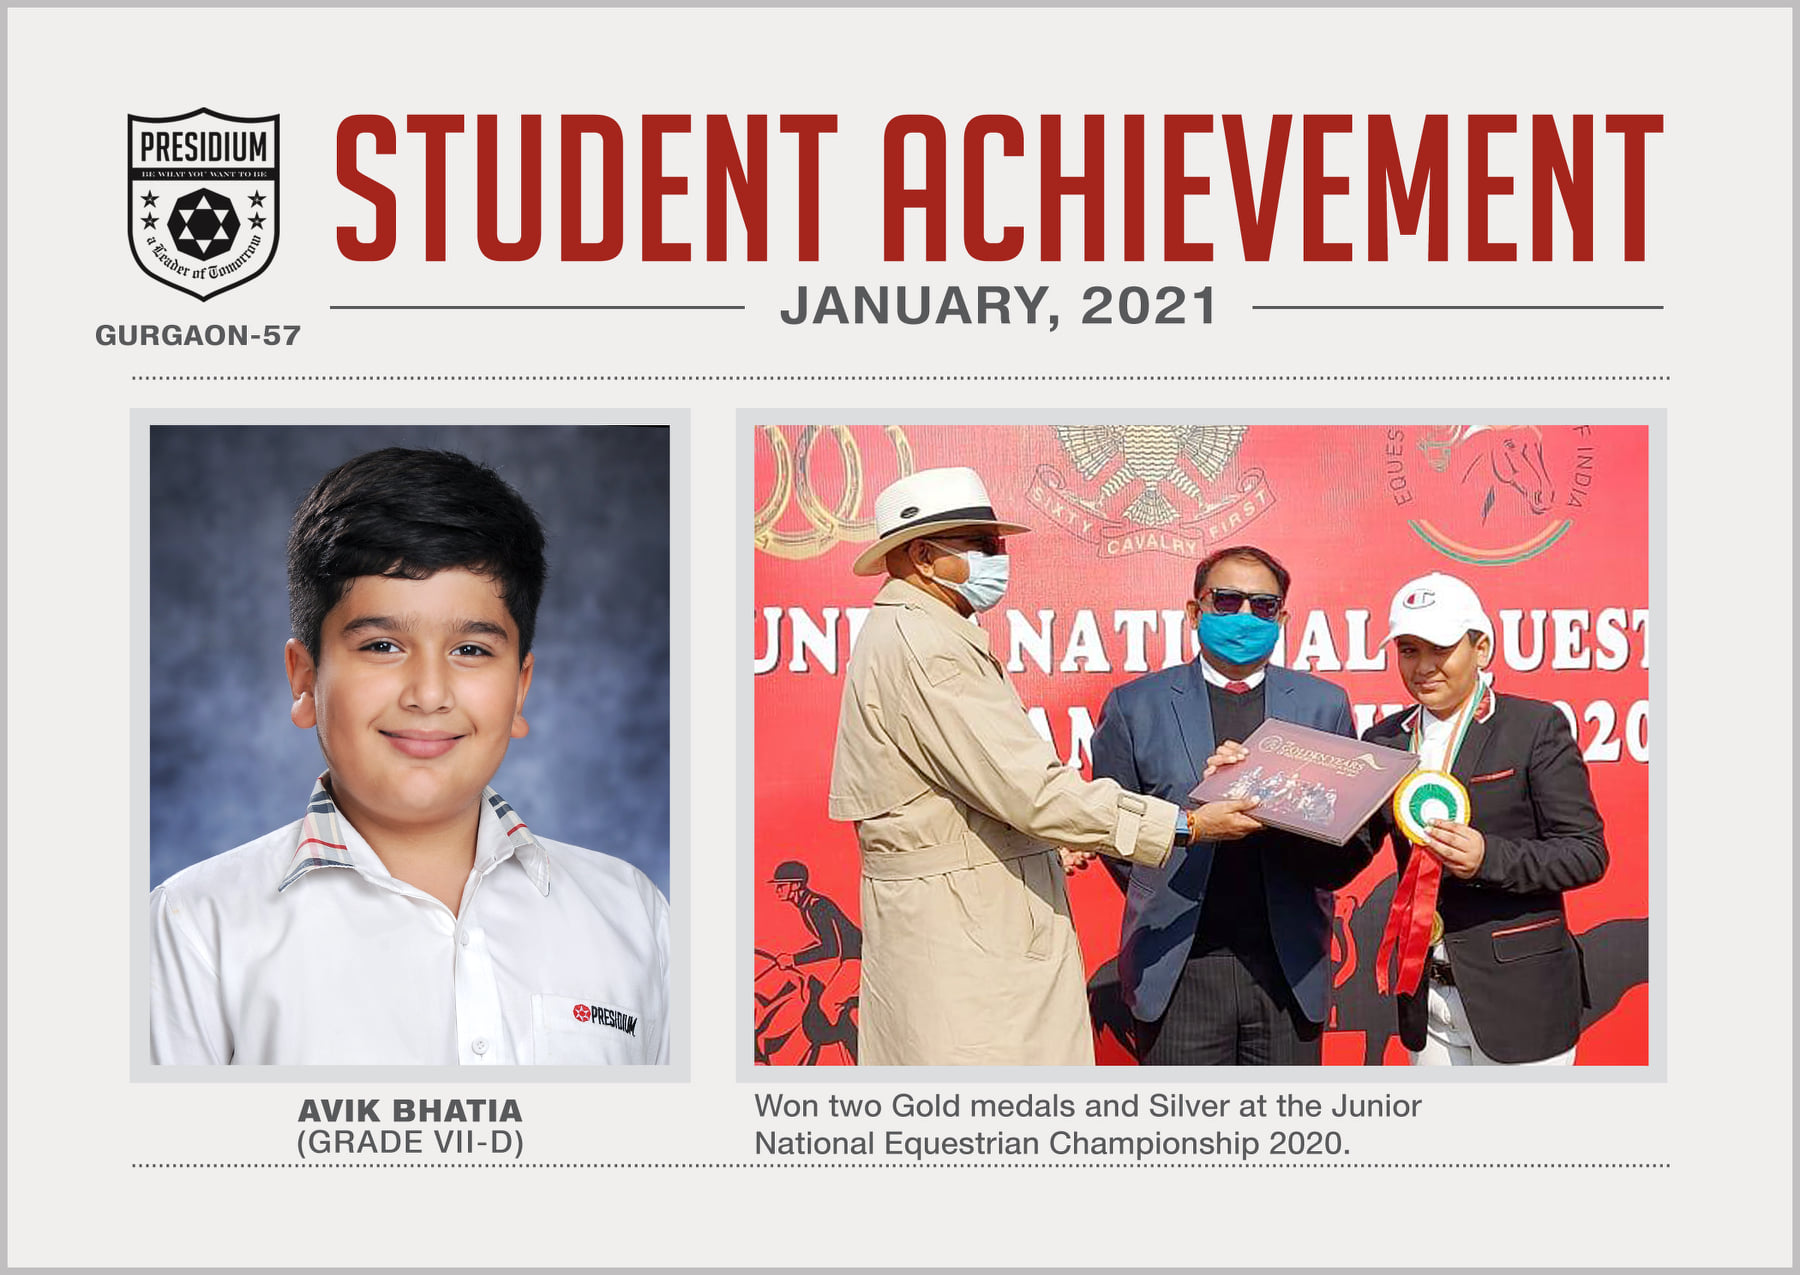 AVIK BHATIA - OUR EQUESTRIAN PRODIGY 2021